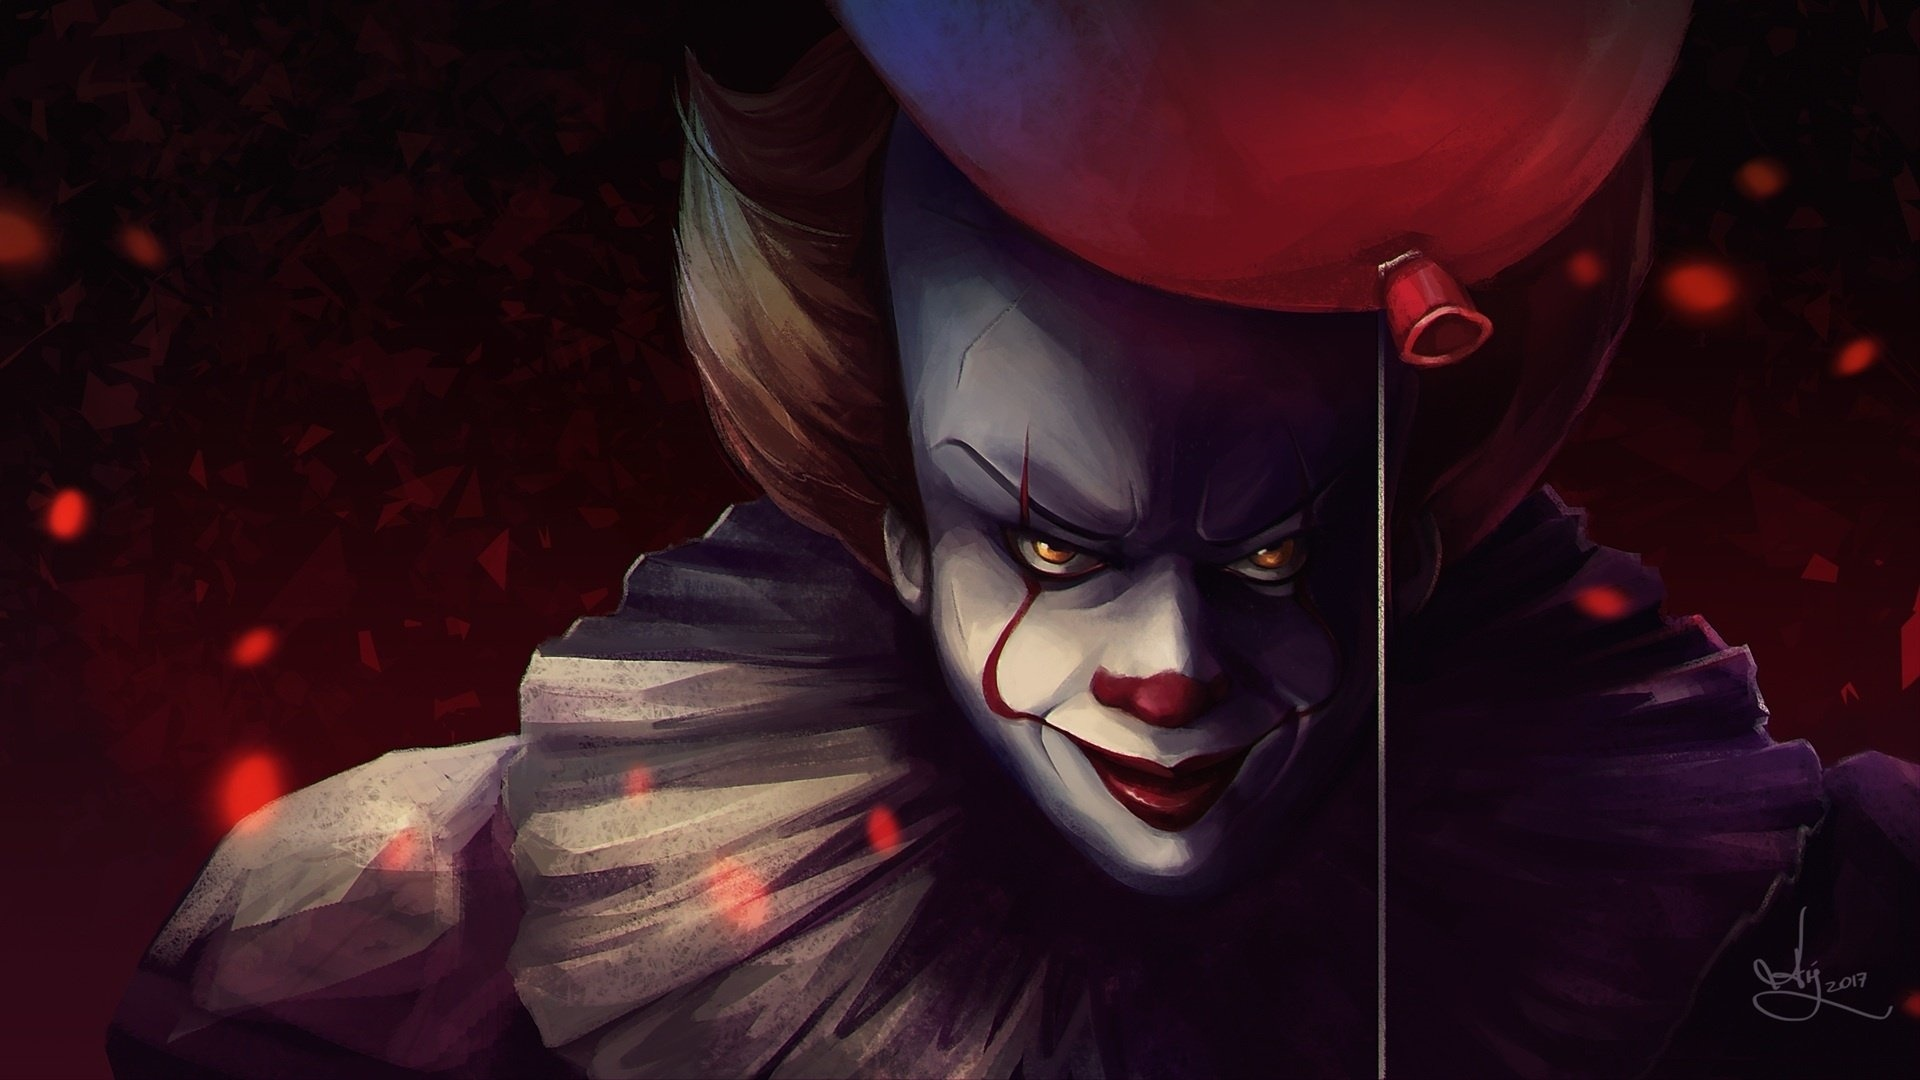 Pennywise best picture